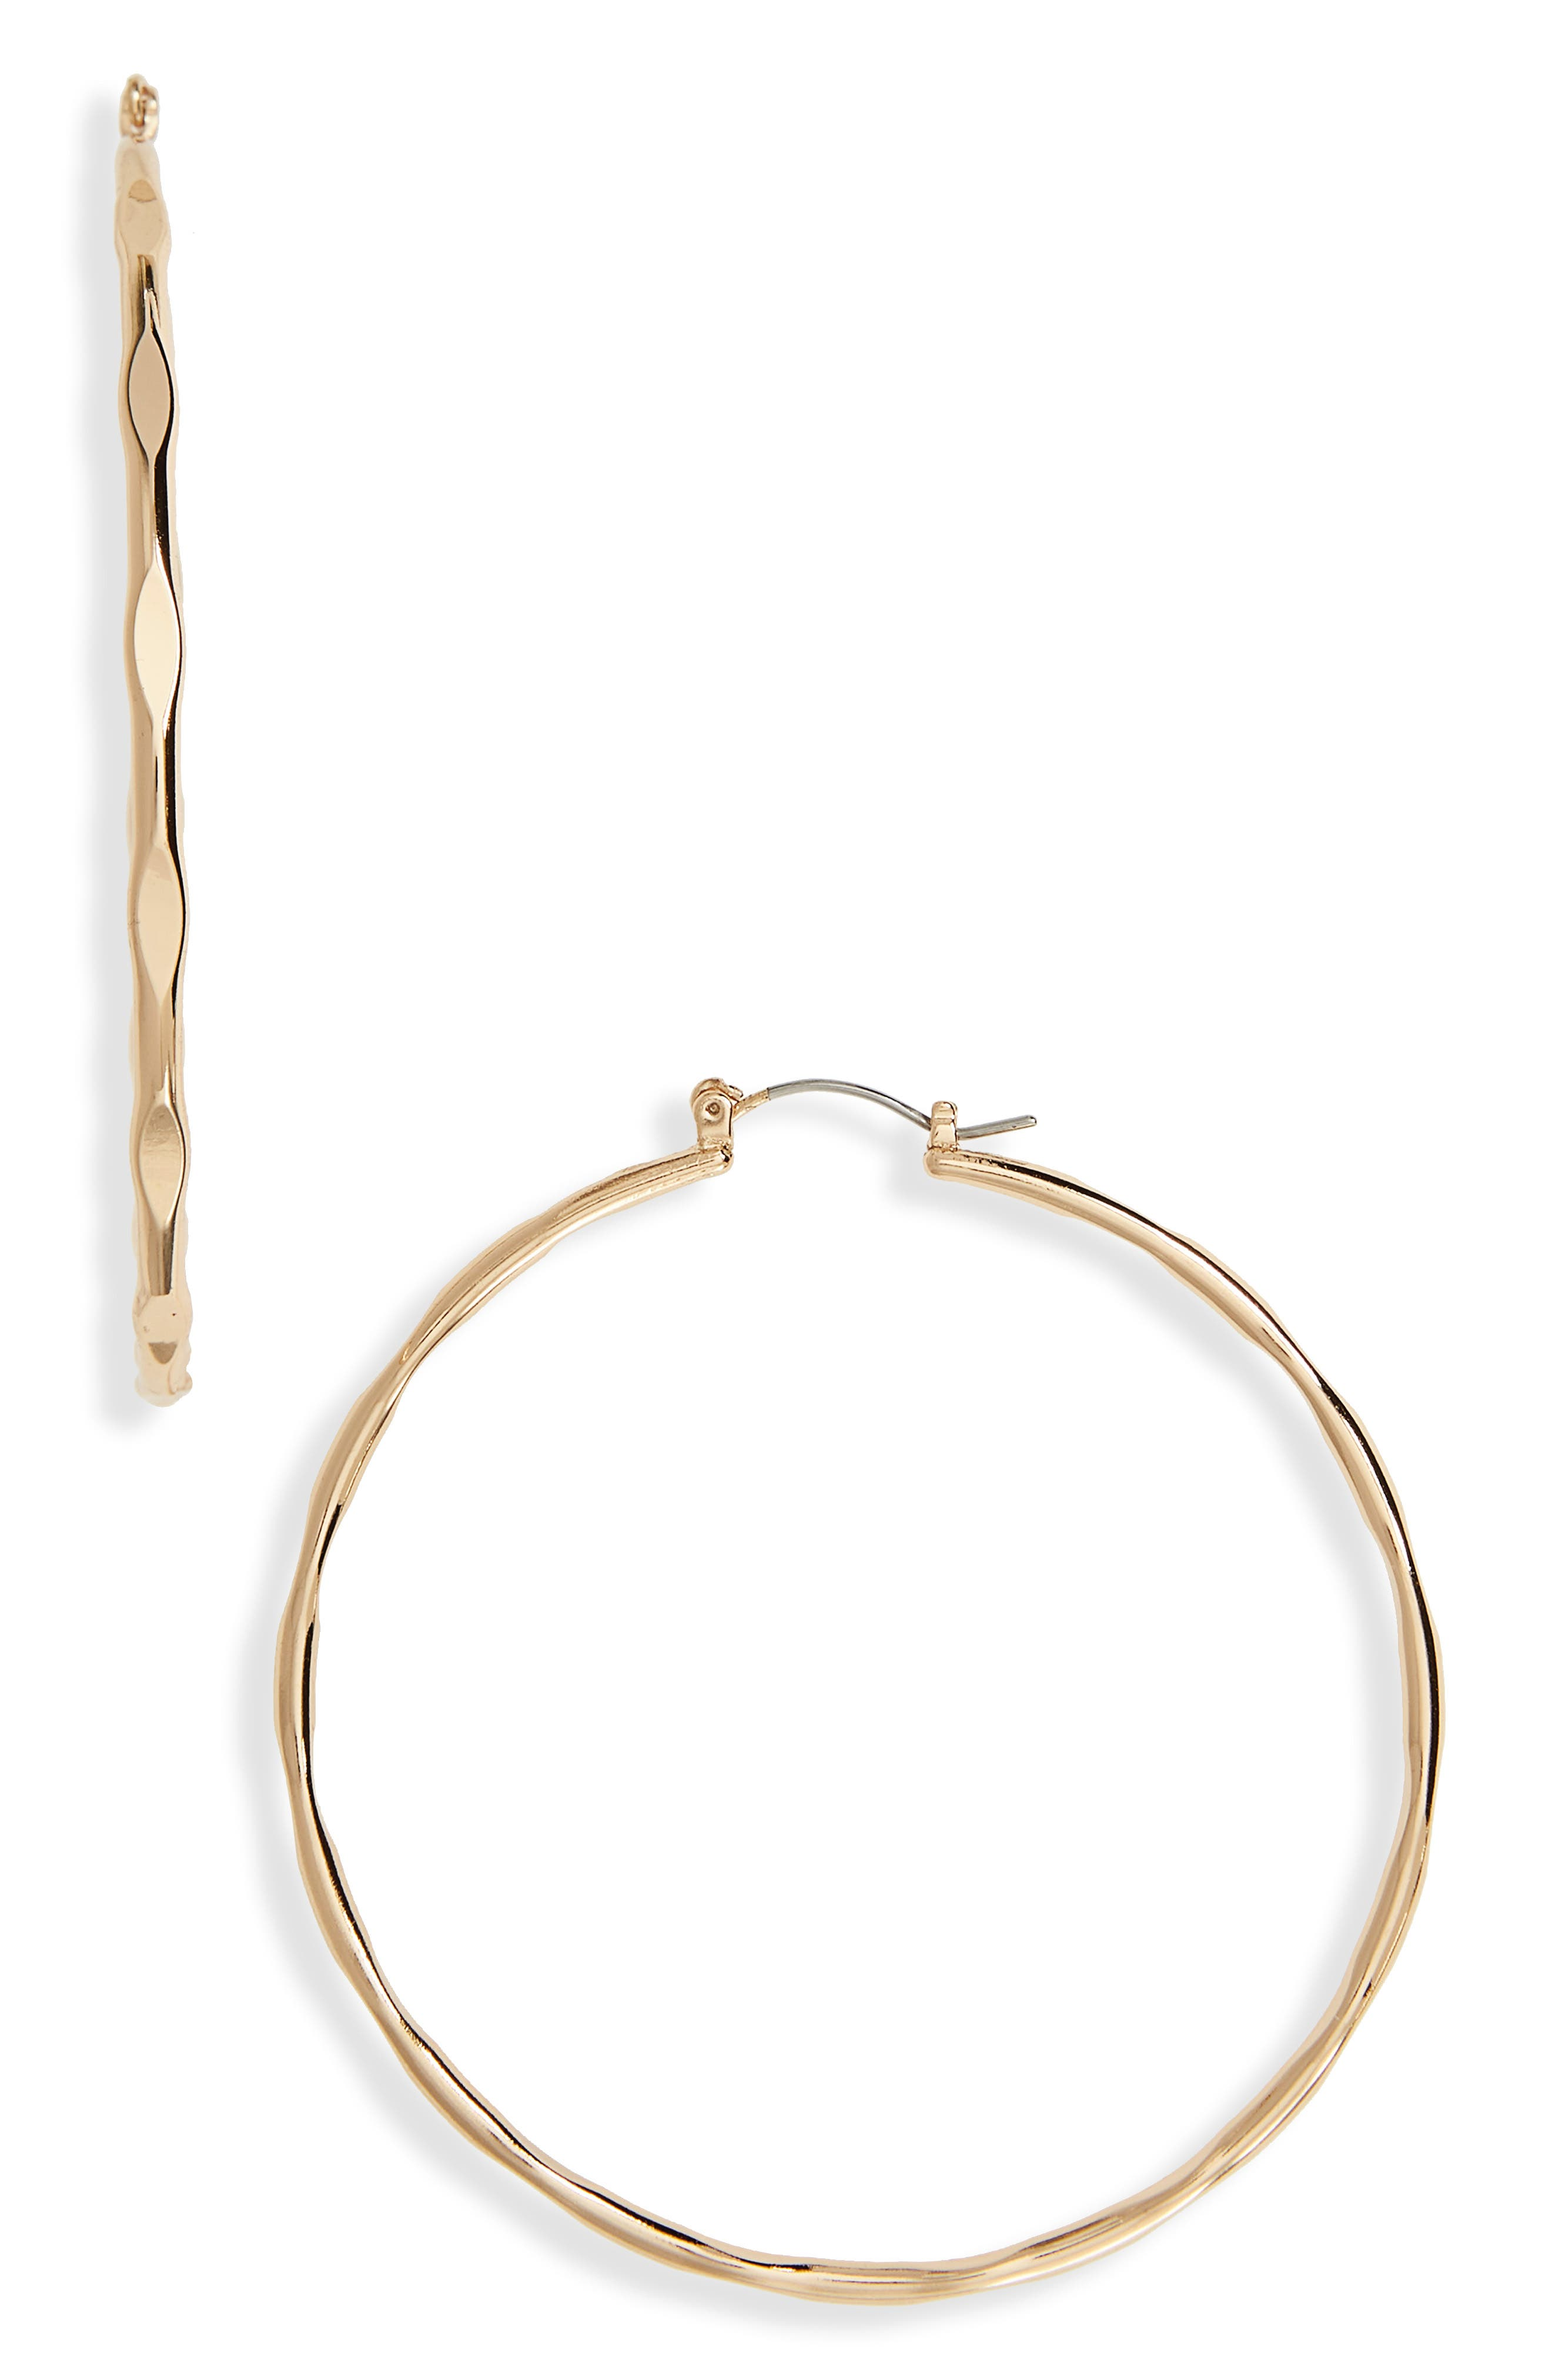 Large Hoop Earrings,                         Main,                         color, Gold